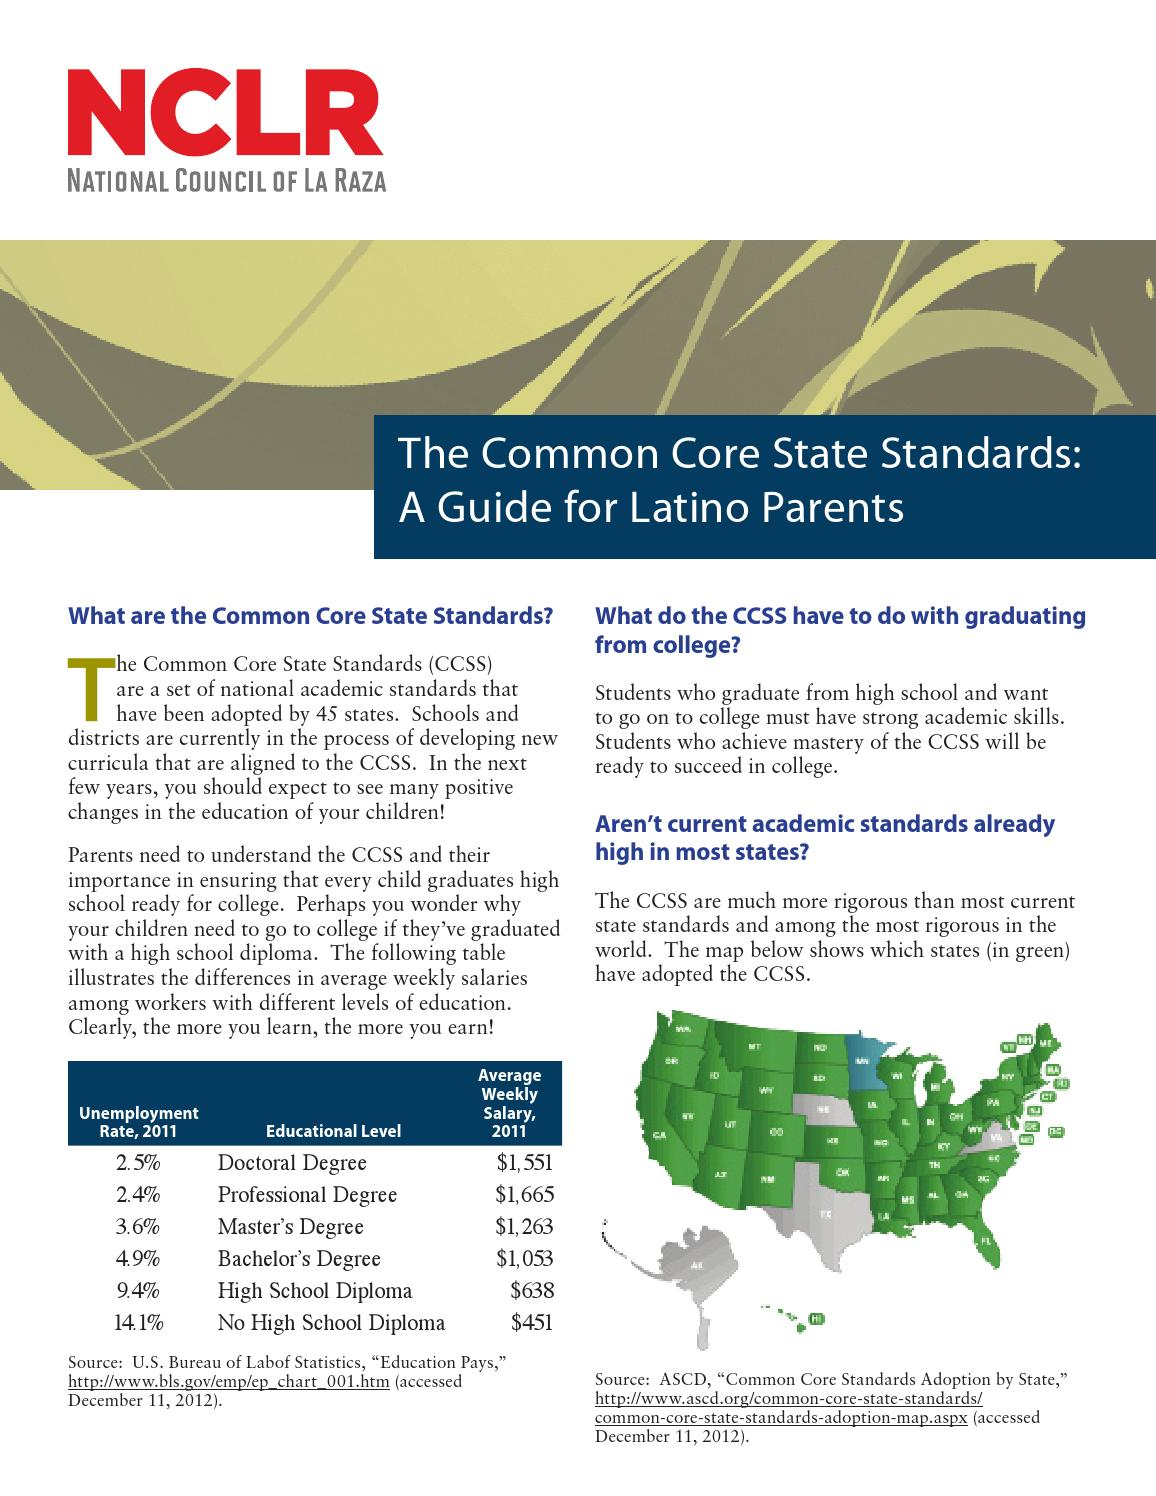 The Common Core State Standards A Guide For Latino Parents By